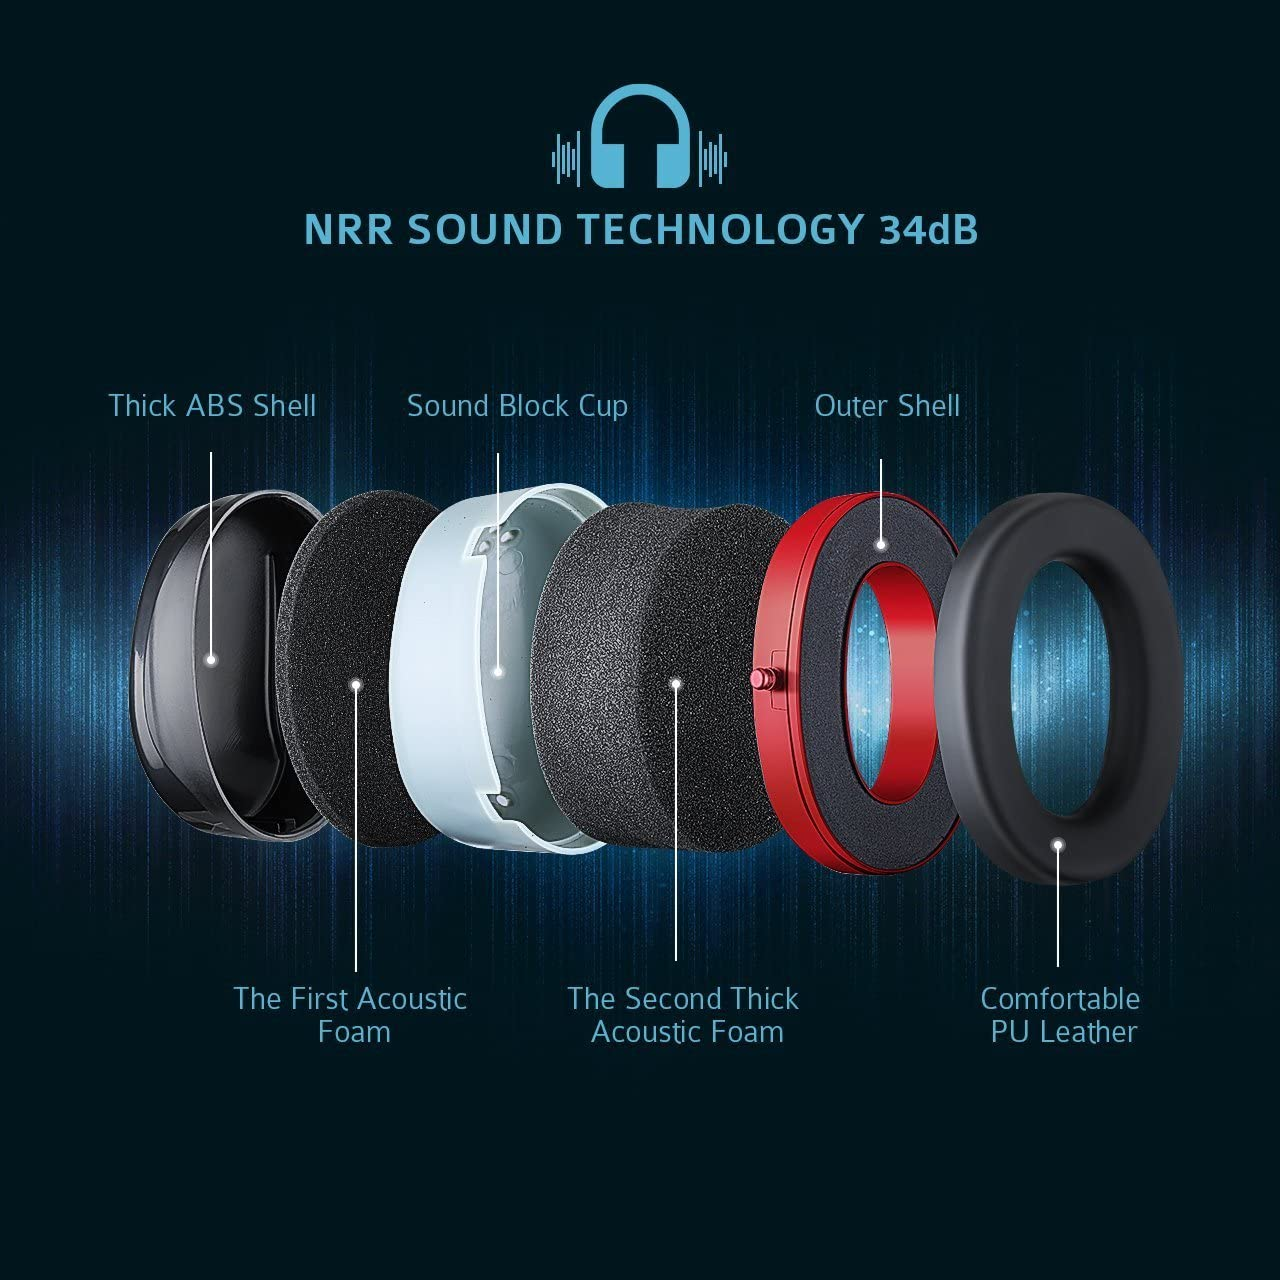 Red Black Noise Cancelling Ear Plugs and Ear Muffs for Kids with Safety Ear Muffs Folding-Padded Head Band Ear Cups Kamizen Noise Cancelling Ear Muffs